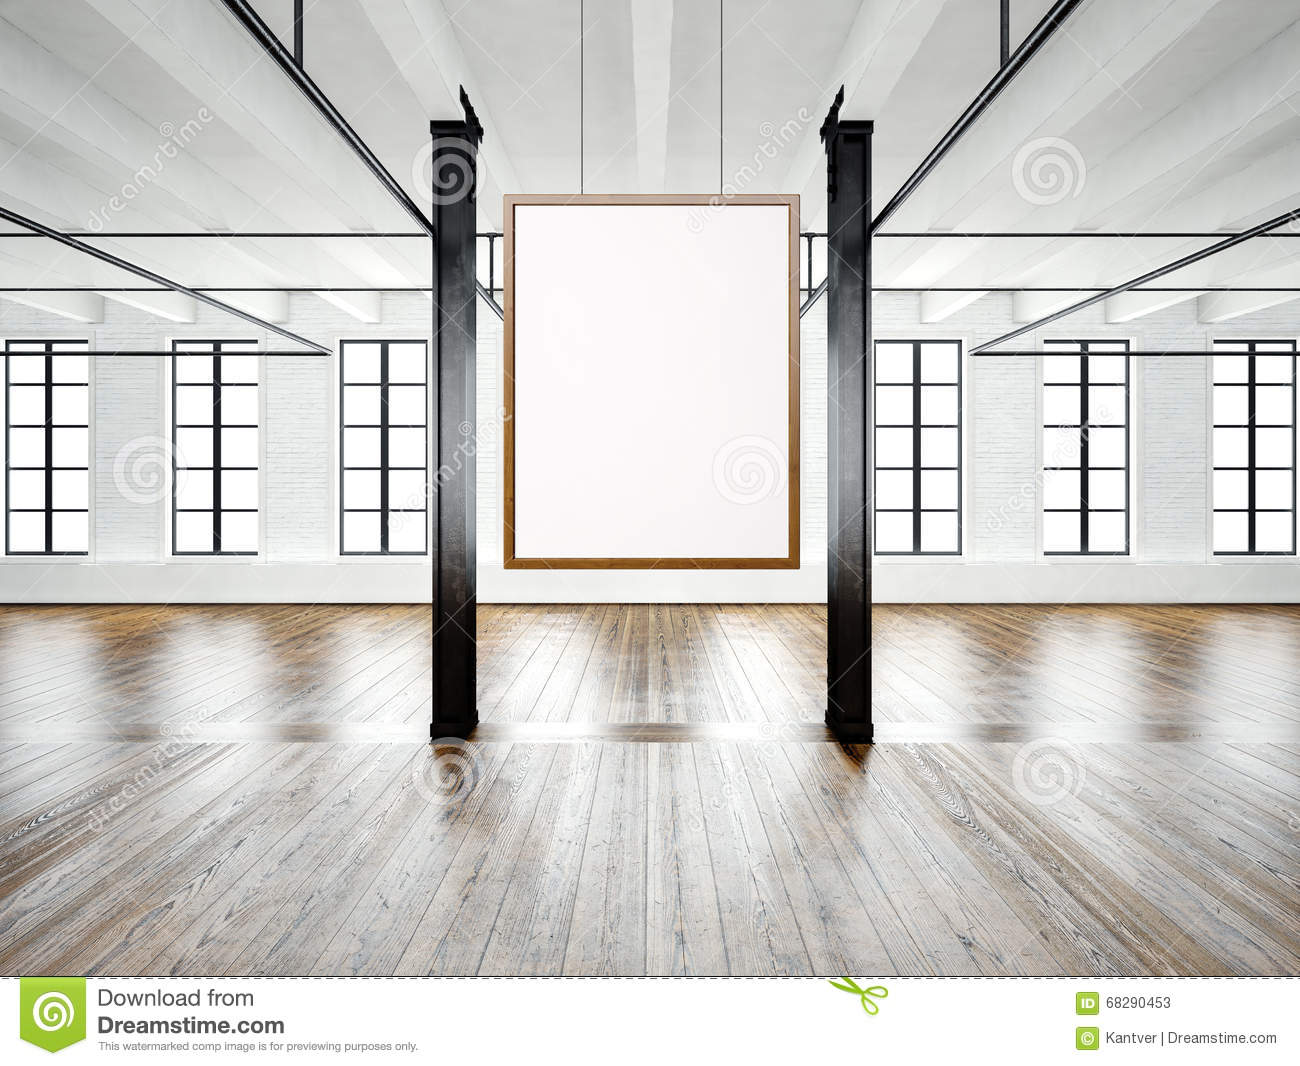 photo of empty interior in modern building open space loft empty white canvas hanging